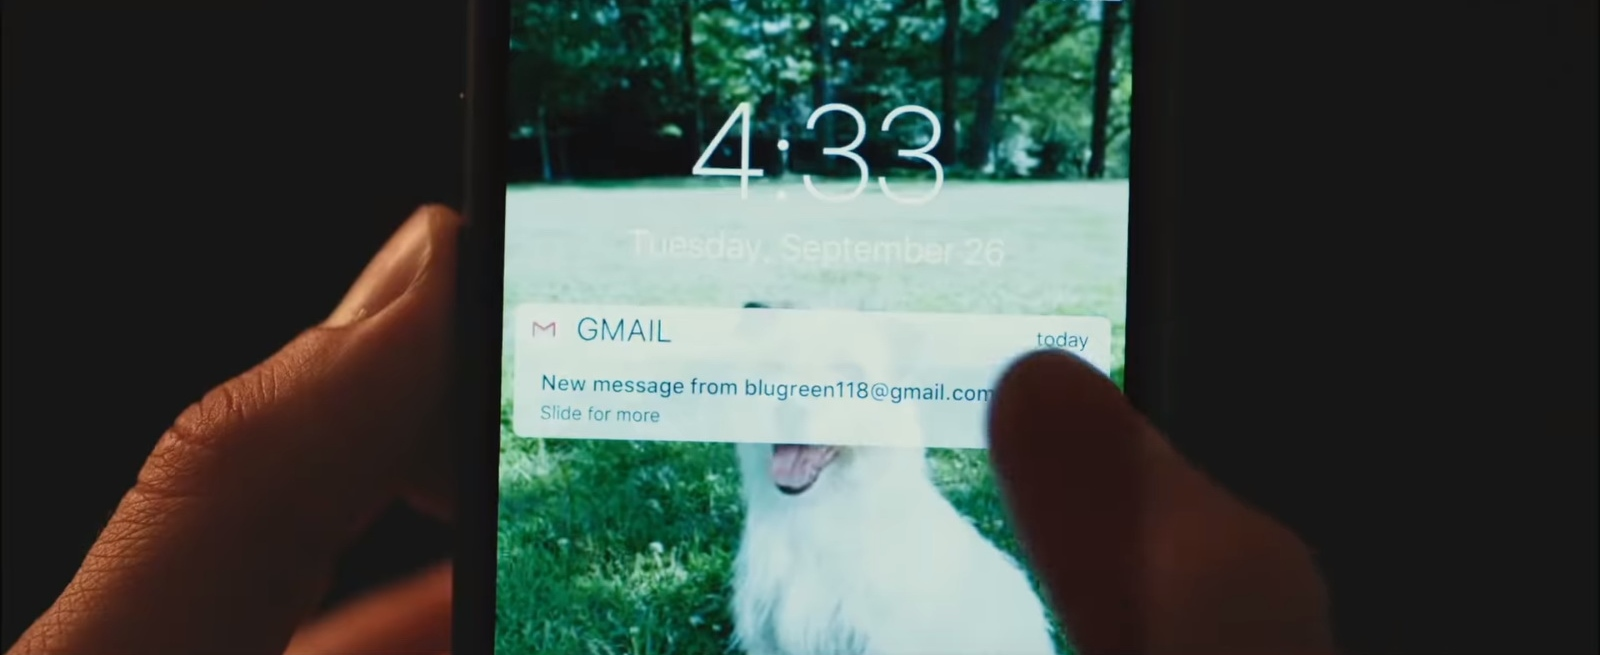 gmail email in love simon 2018 movie